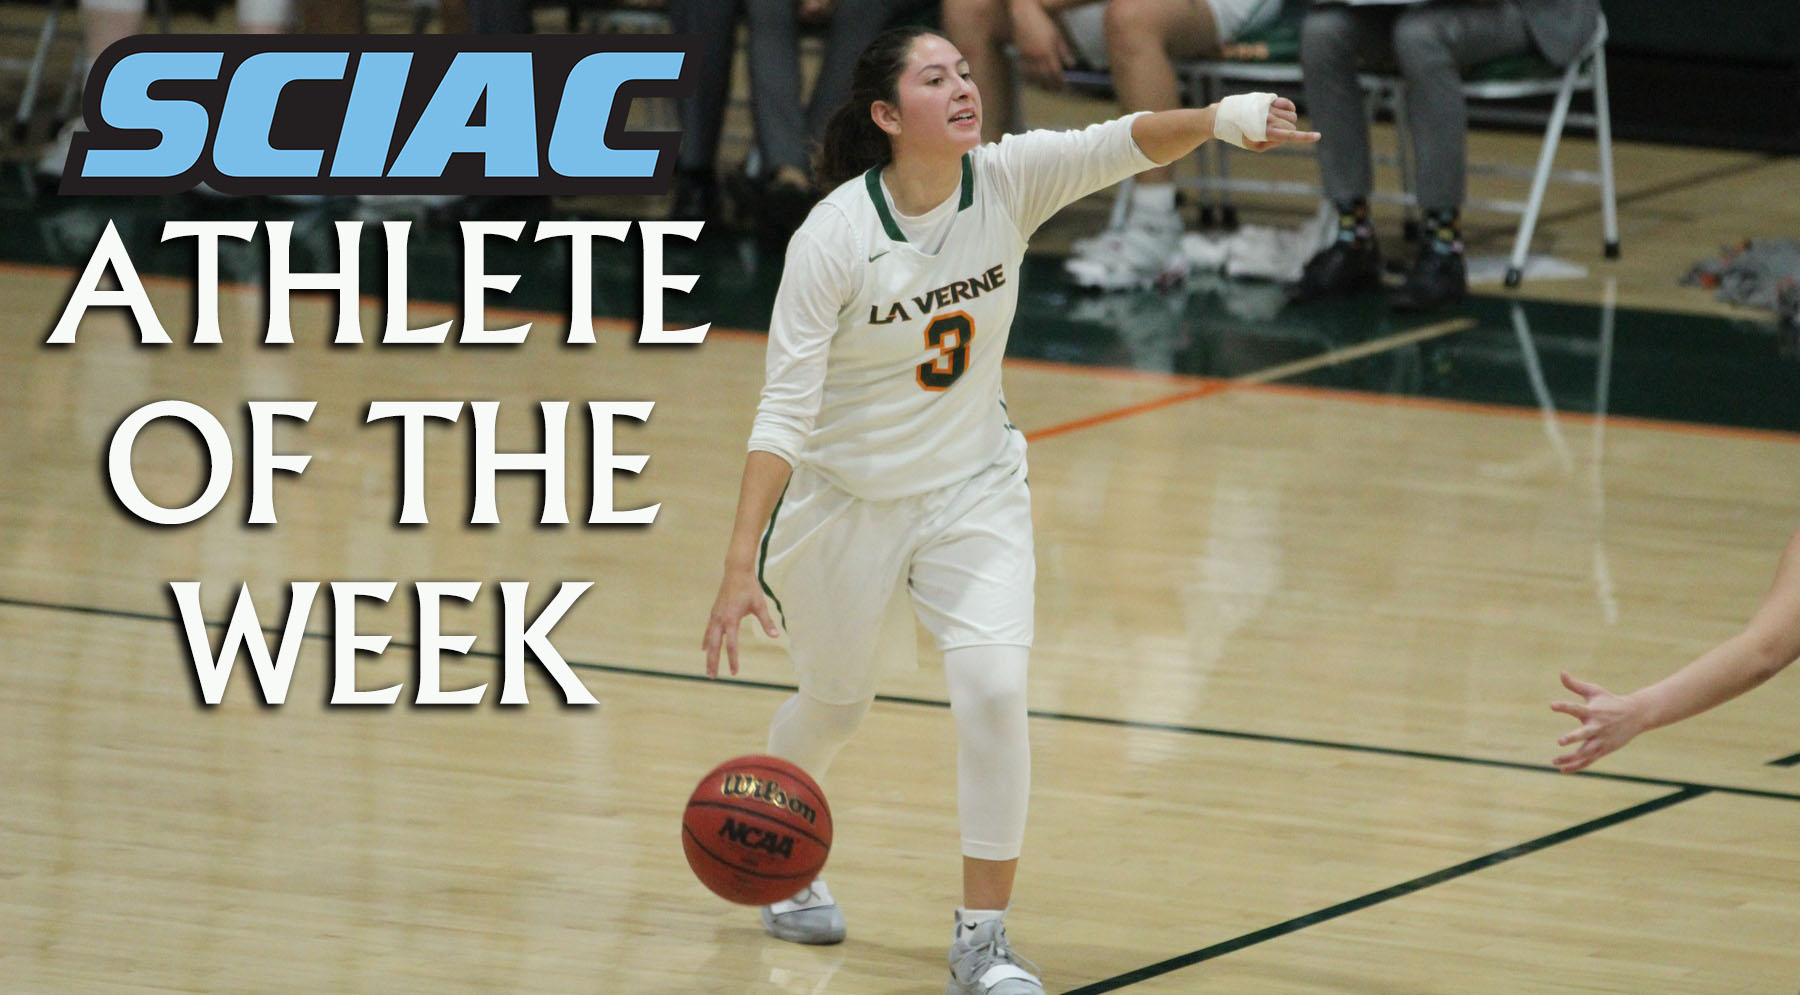 Perez named SCIAC Athlete of the Week